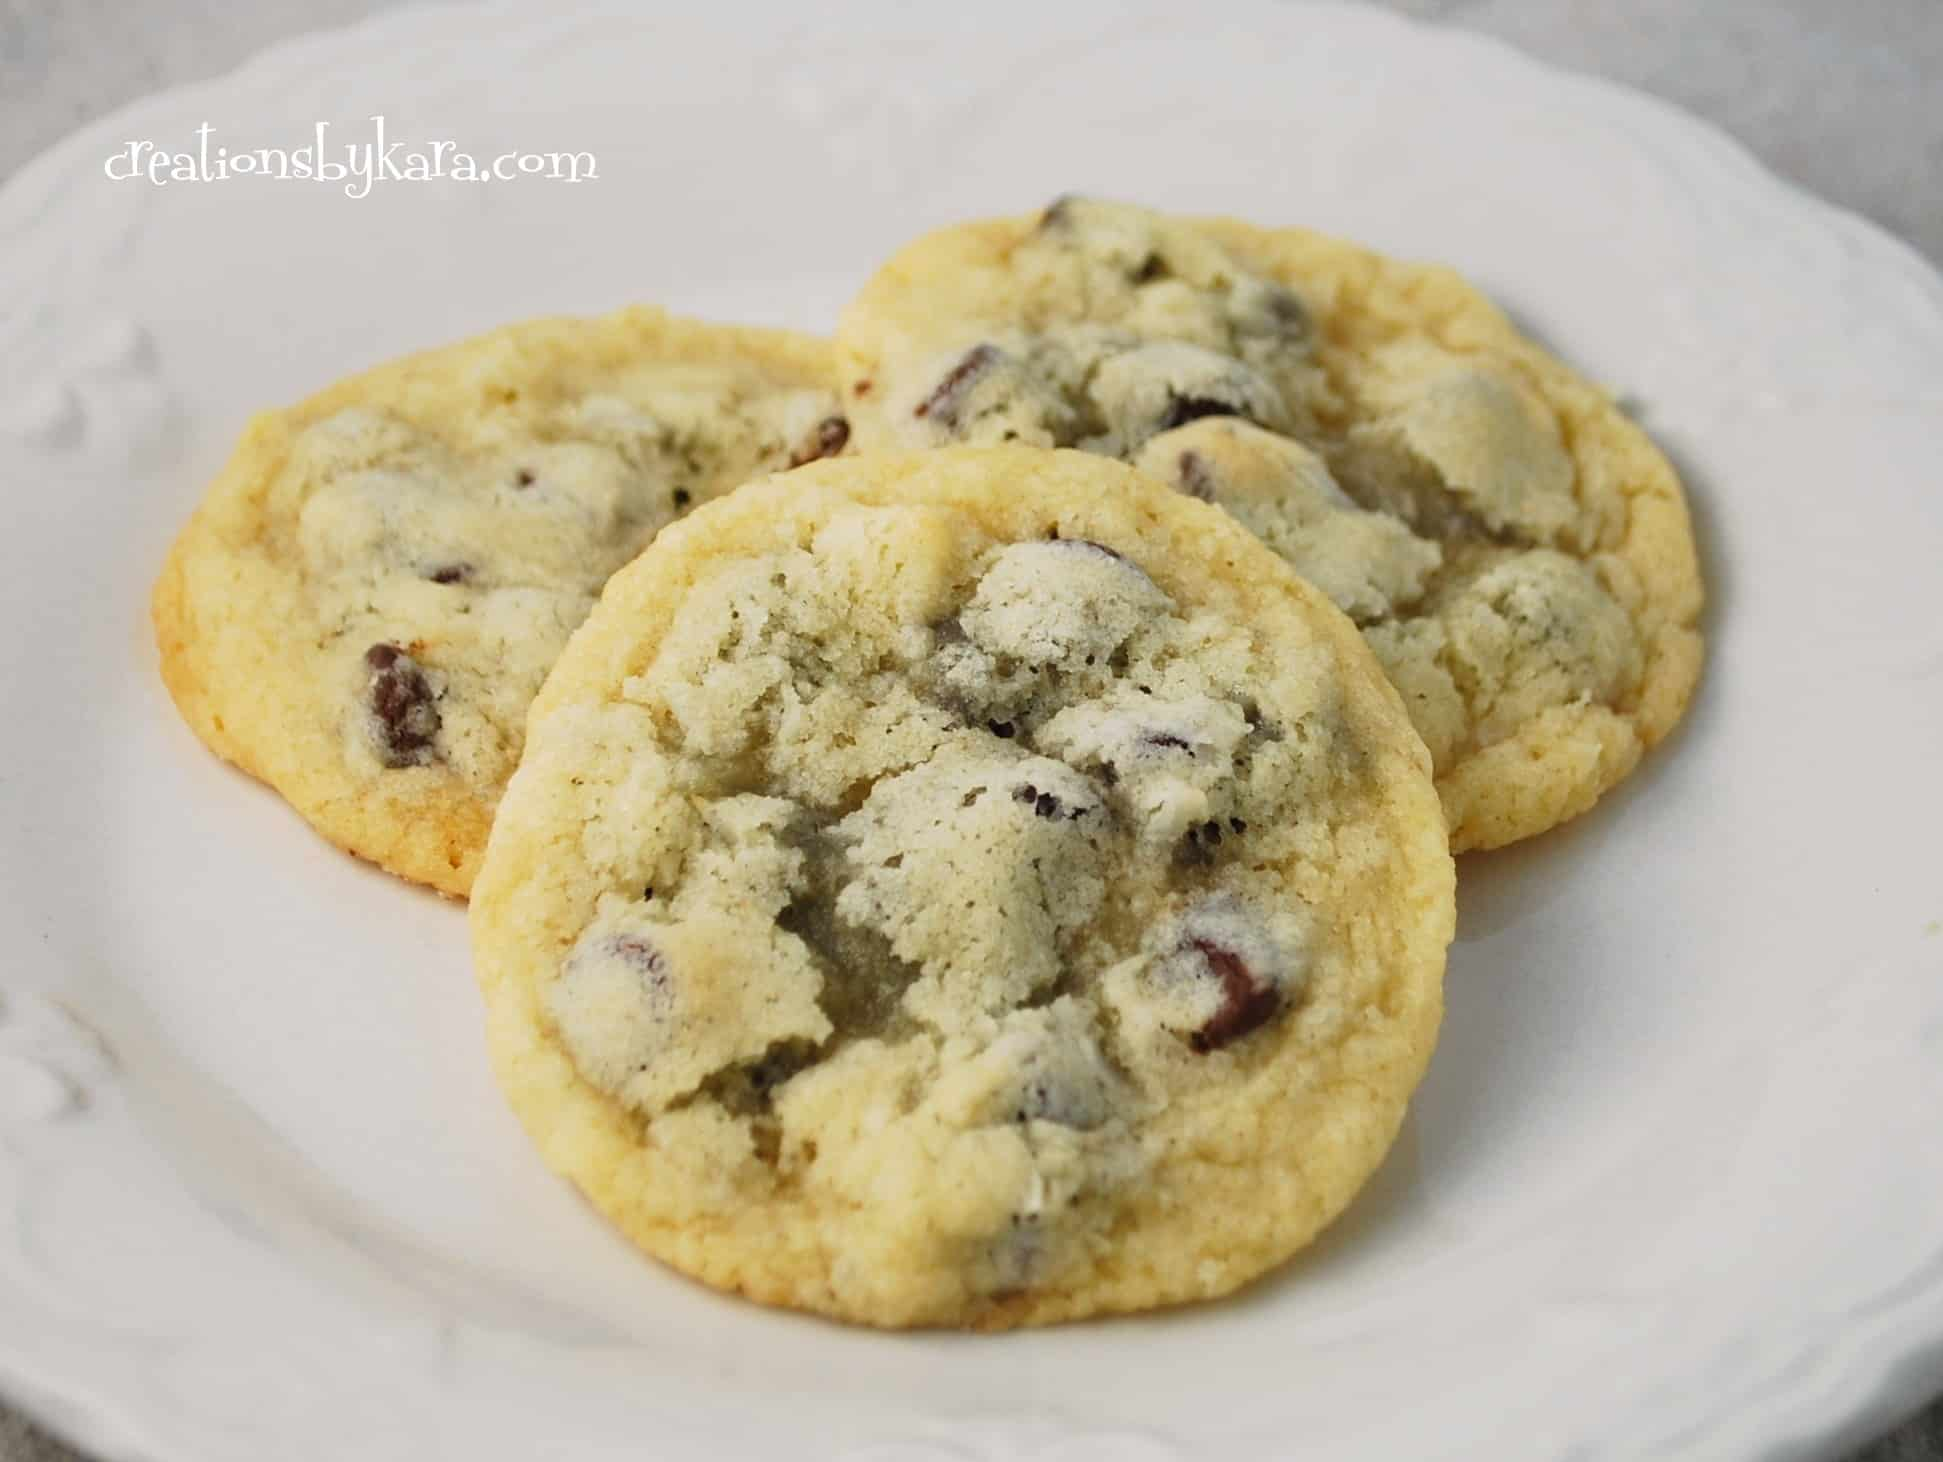 coconut chocolate chip cookies 007 - Creations by Kara